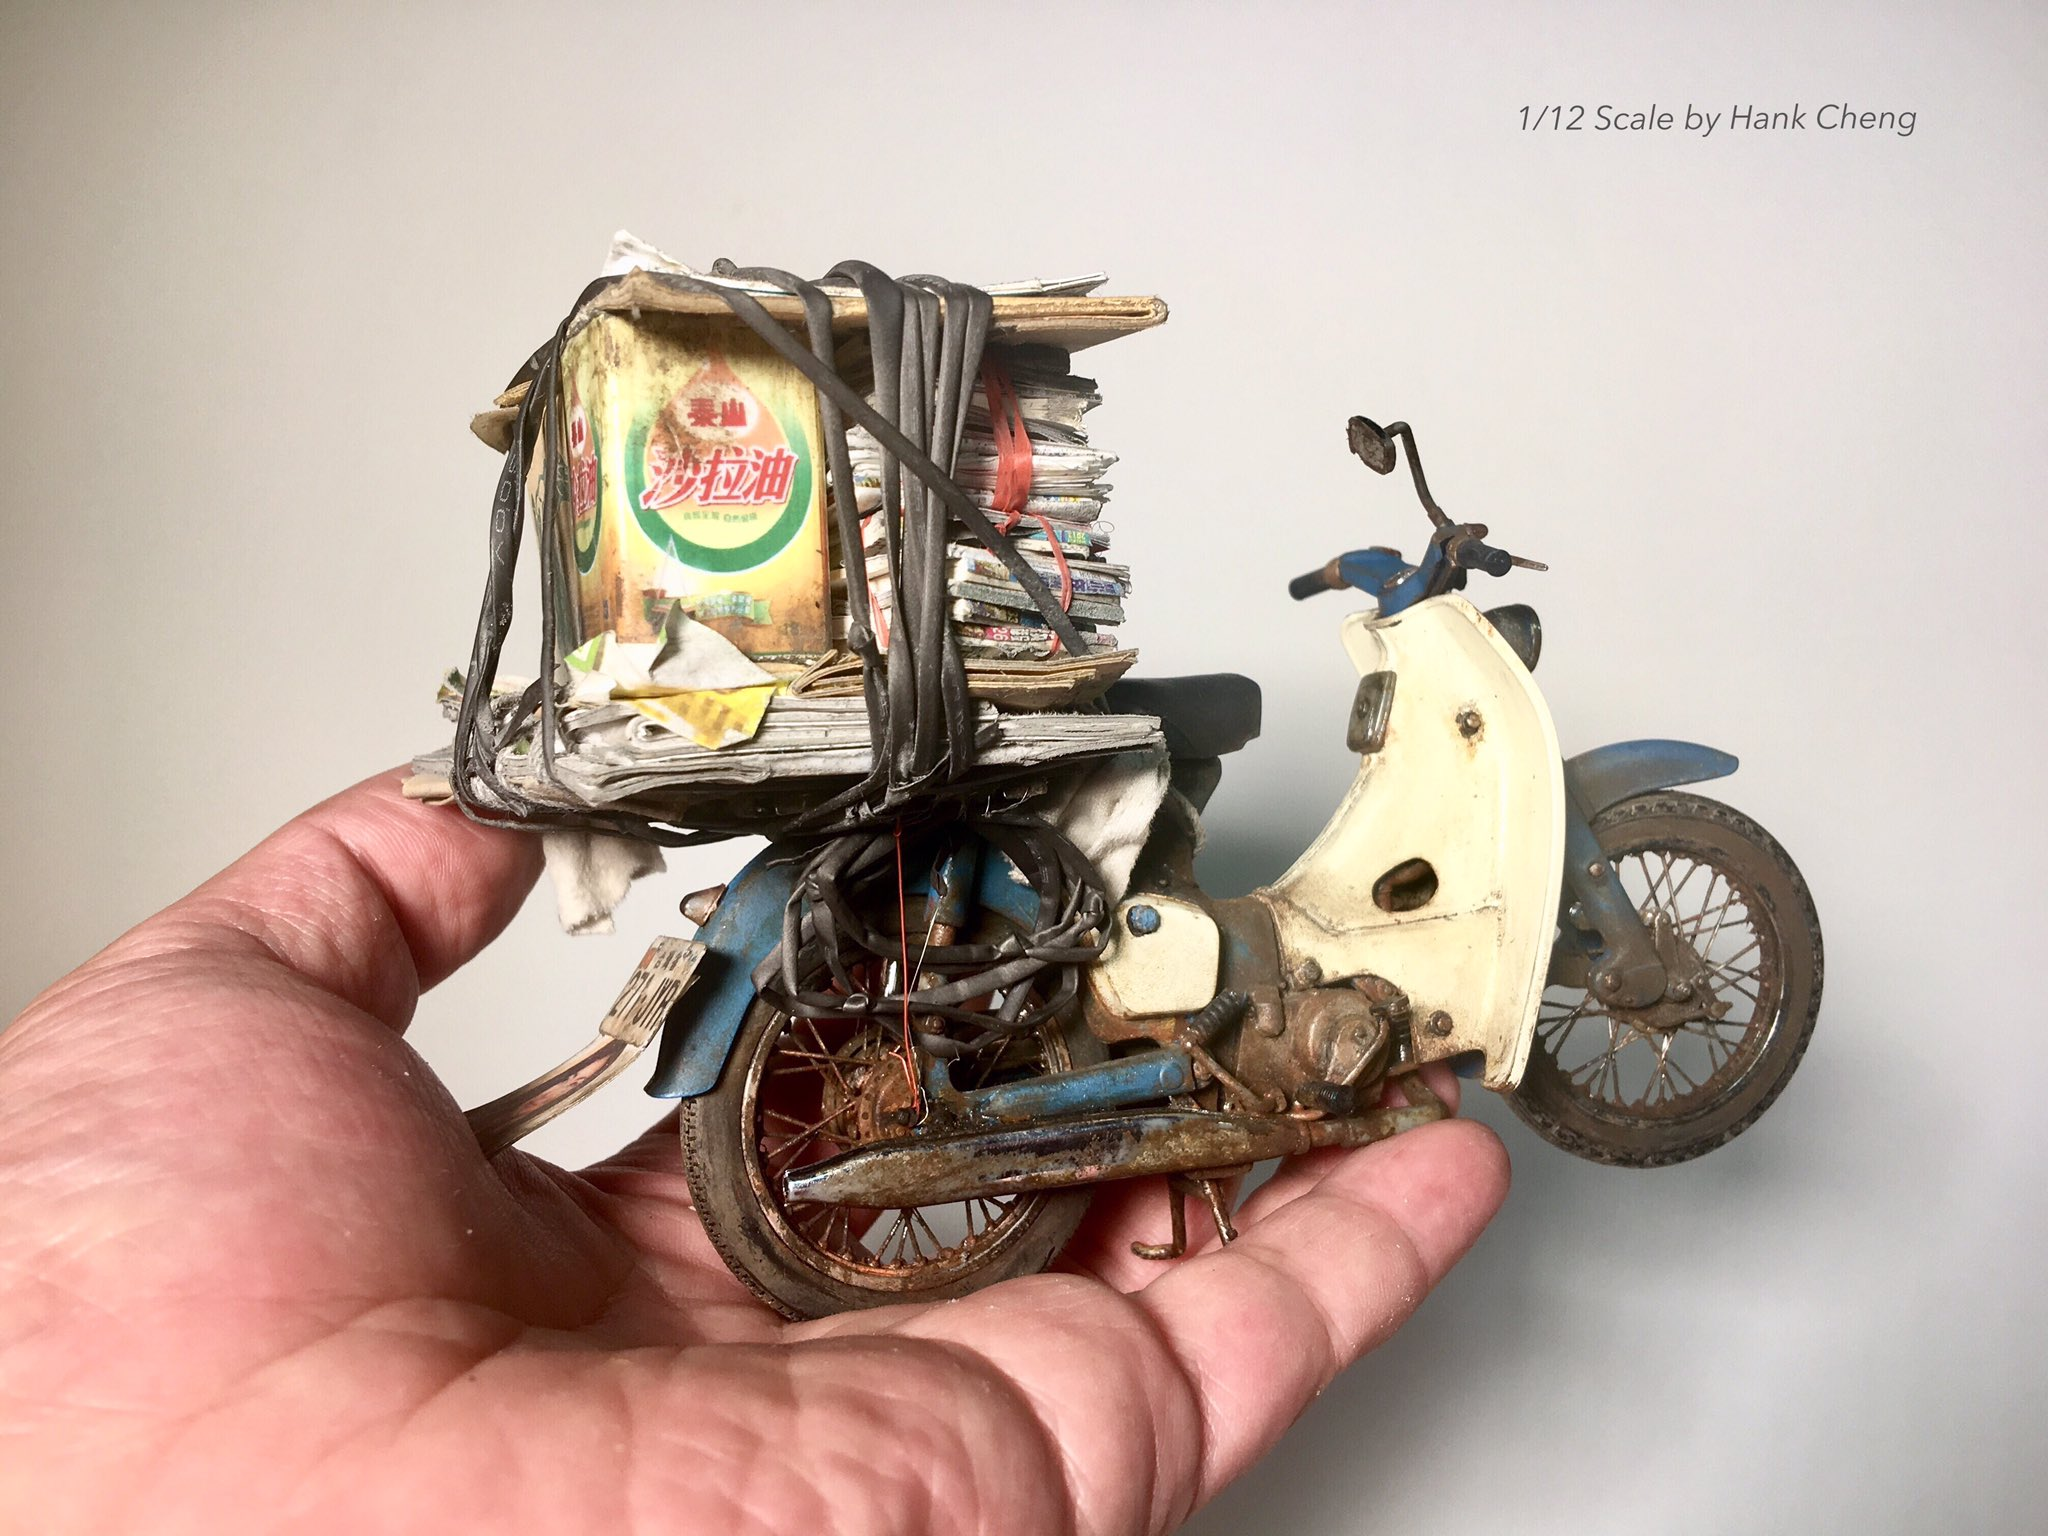 1/12 Scale 「Recycling grandpa's summer」 https://t.co/VHMJND6yWy